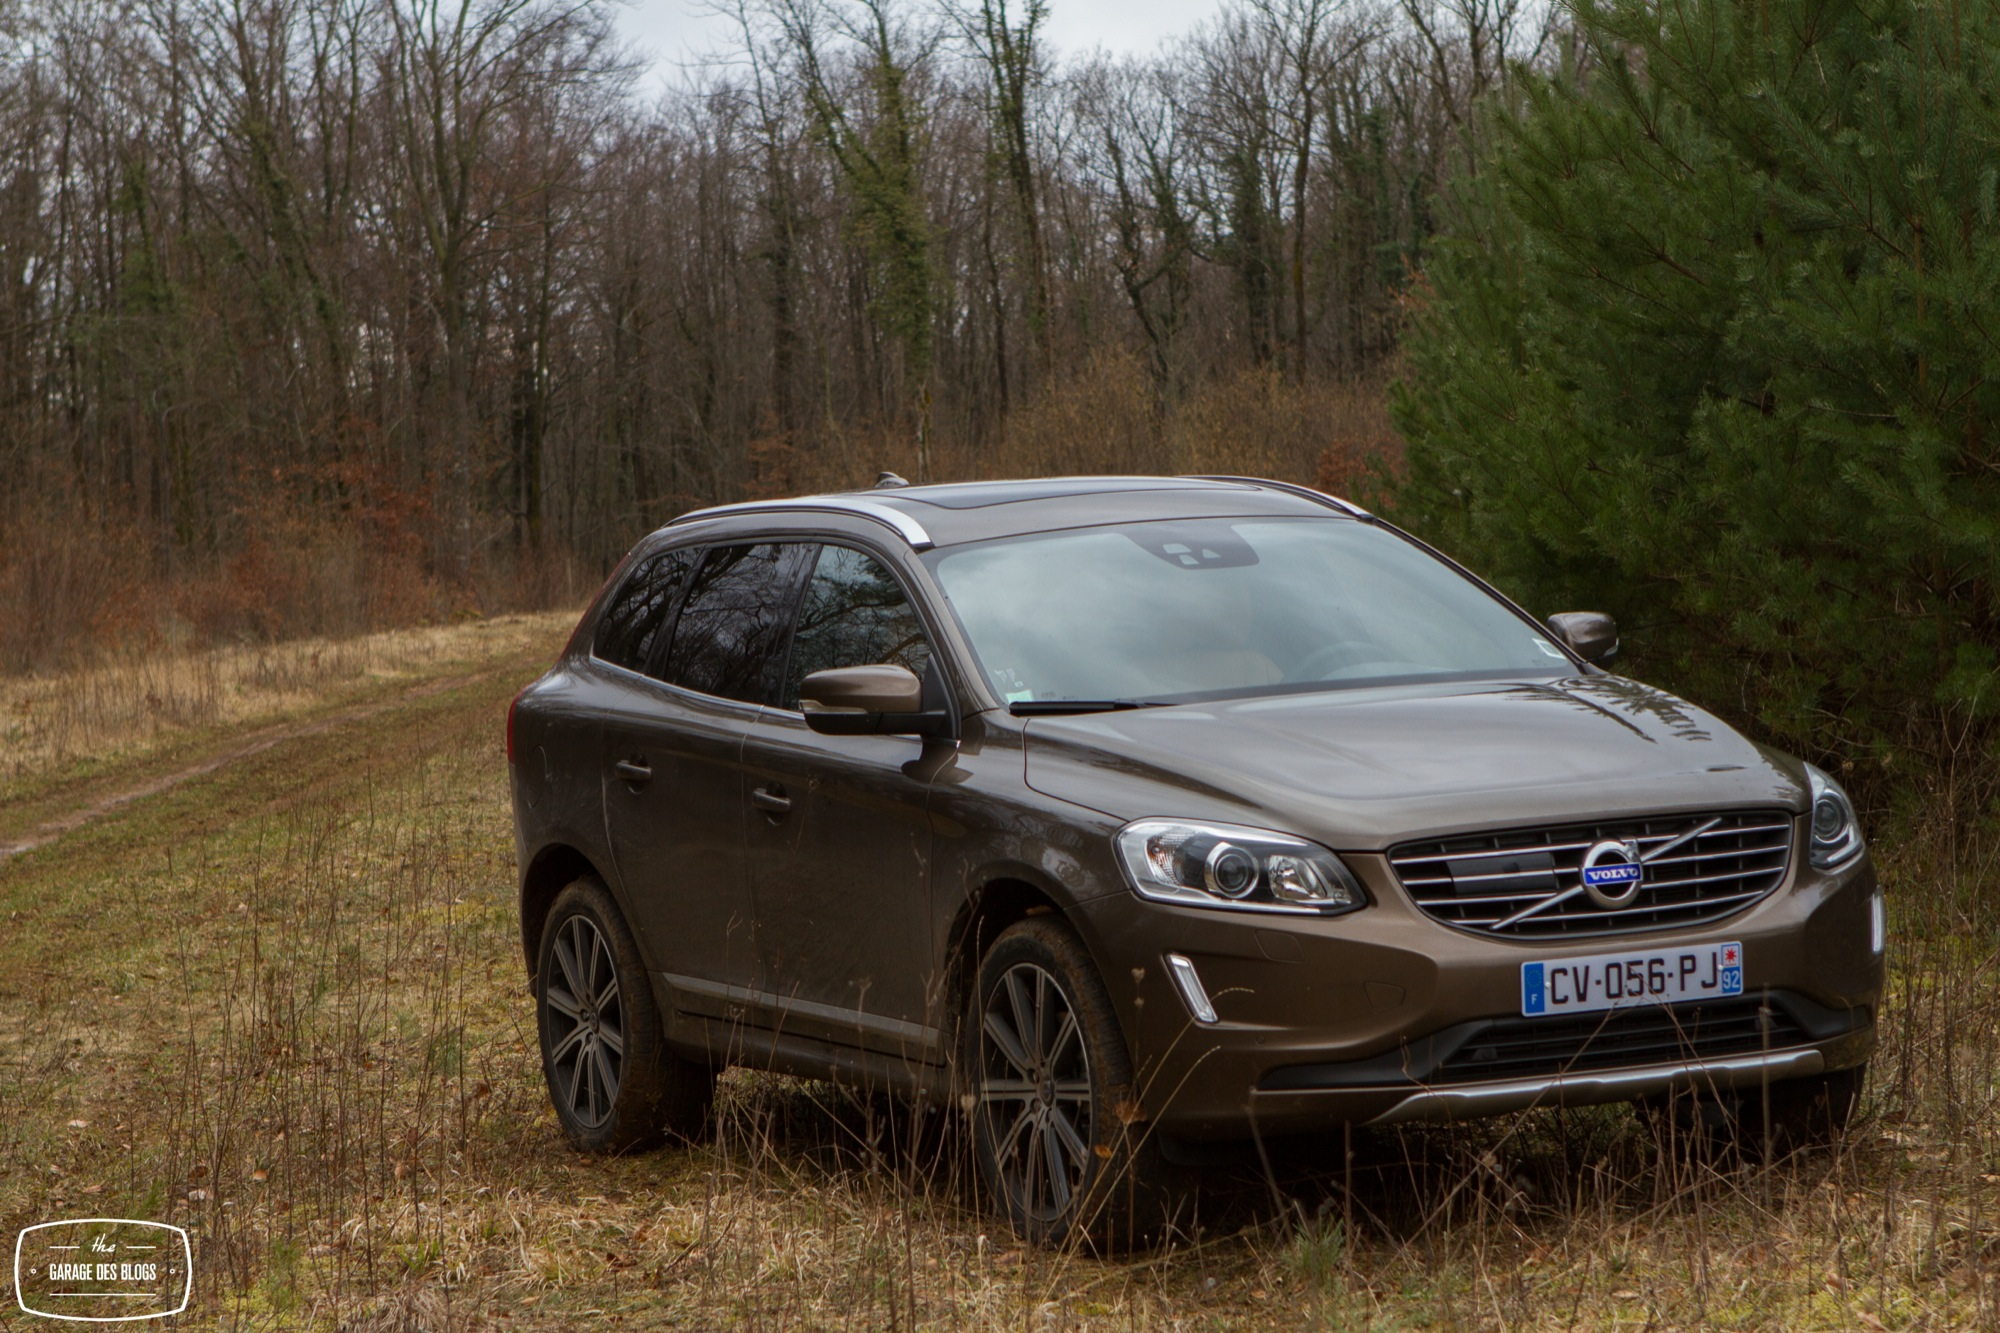 essai volvo xc60 d4 awd 1 le blog de viinz. Black Bedroom Furniture Sets. Home Design Ideas